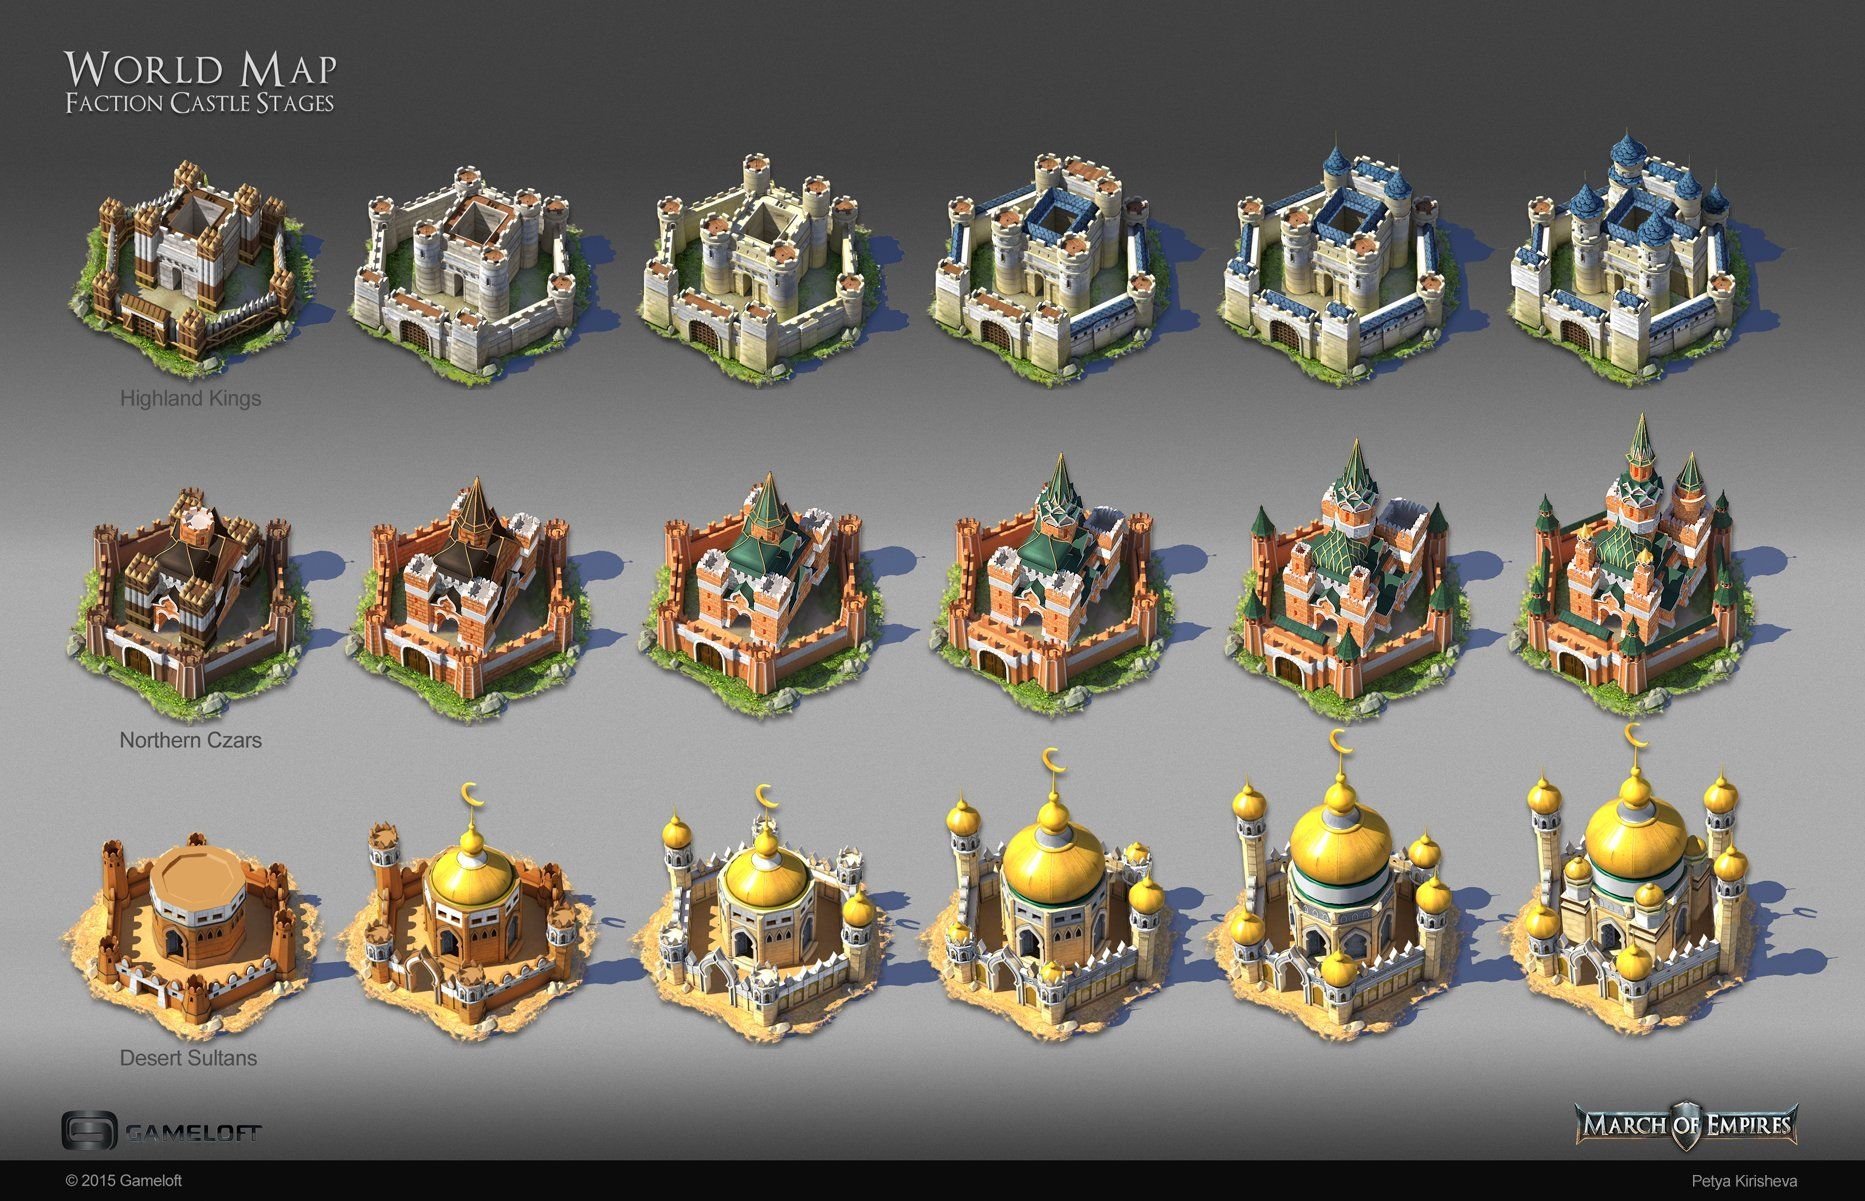 Artstation world map concepts and buildings petya kirisheva artstation world map concepts and buildings petya kirisheva game concept artworld gumiabroncs Choice Image